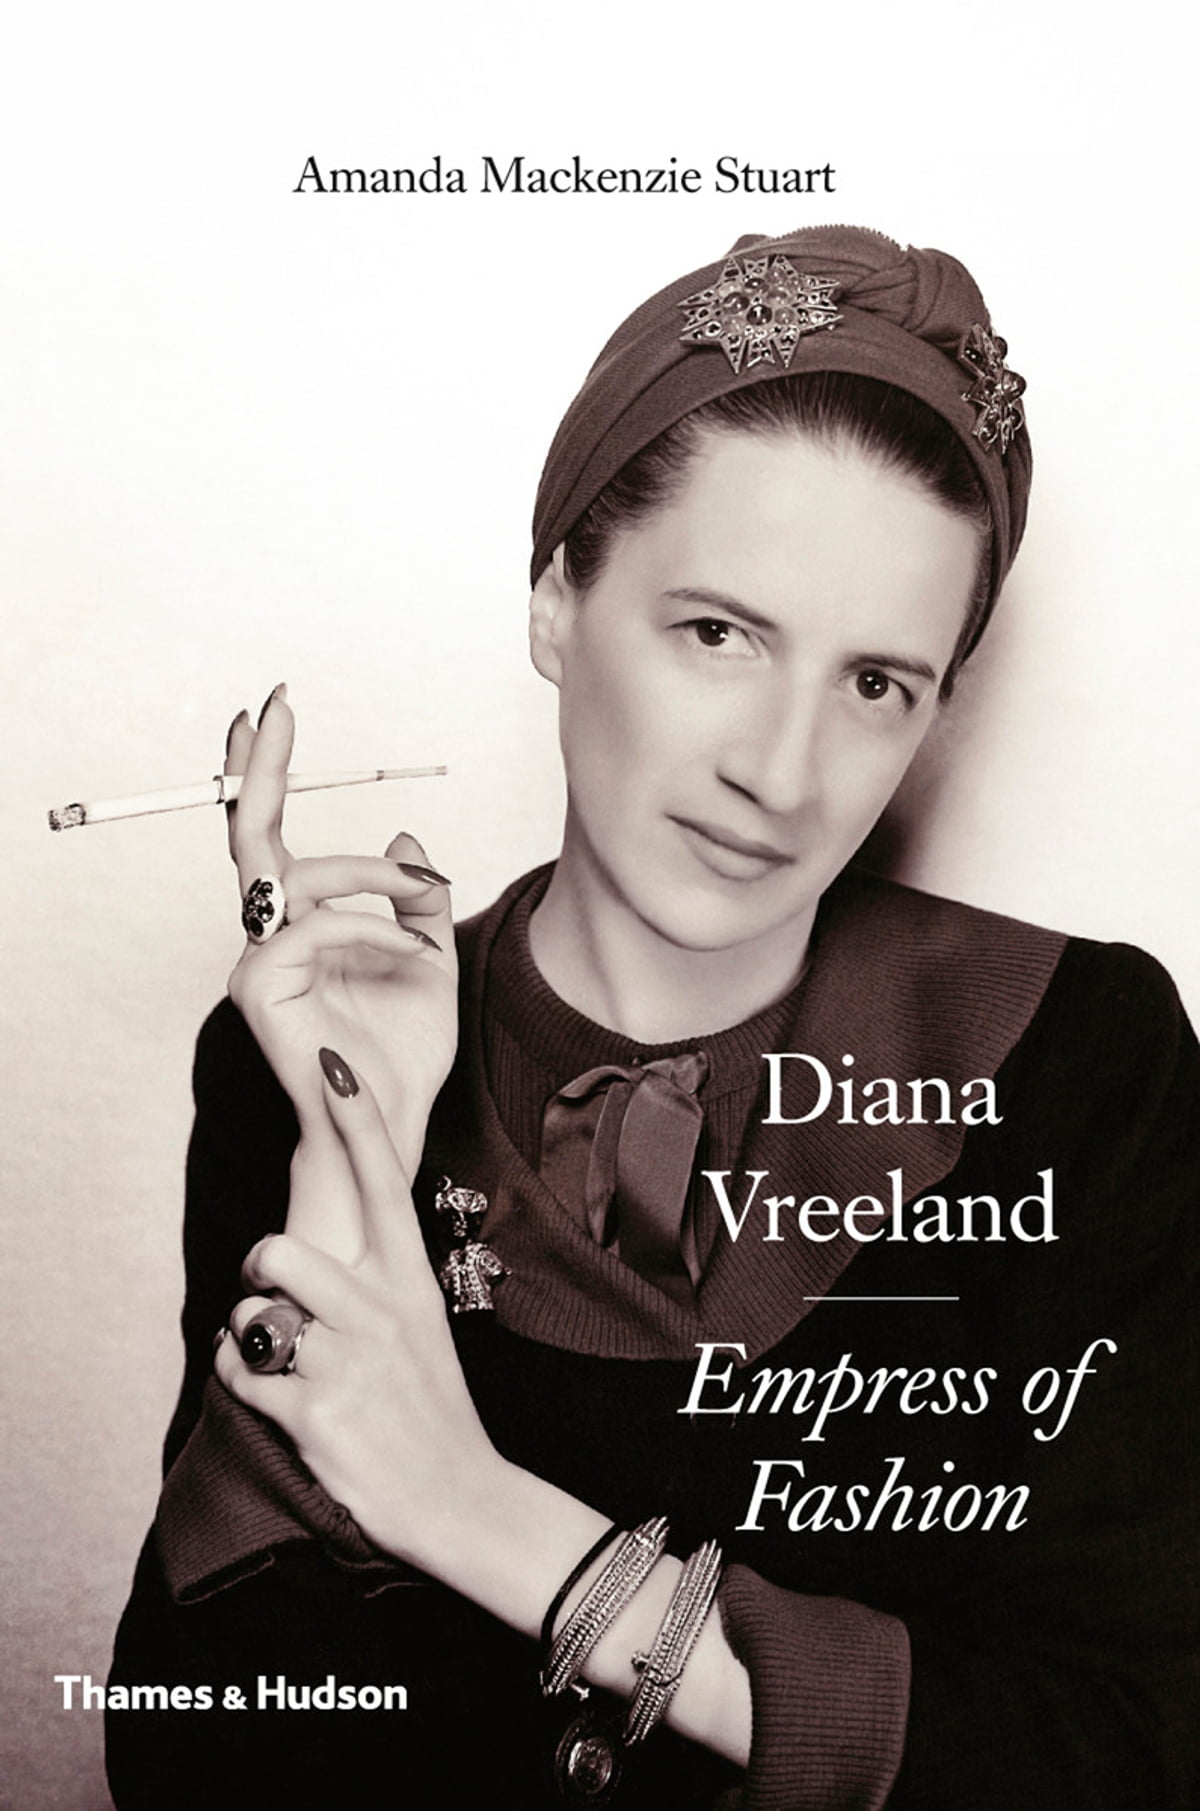 Diane Vreeland: biography and personal life 49